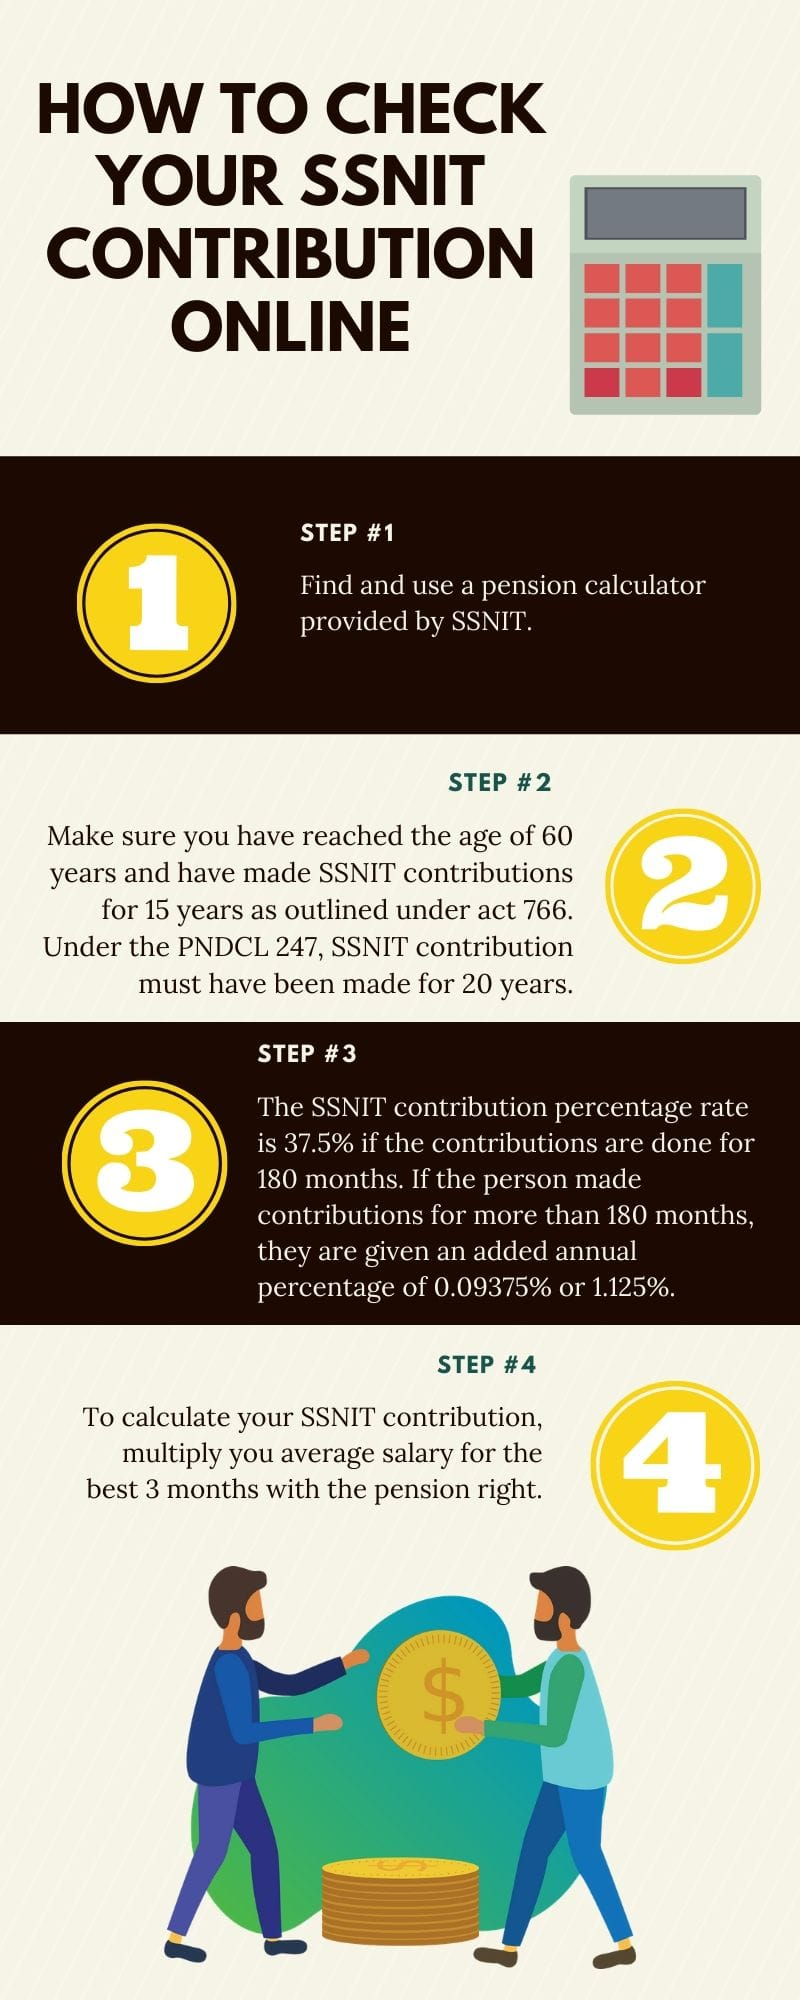 How to check your SSNIT contribution